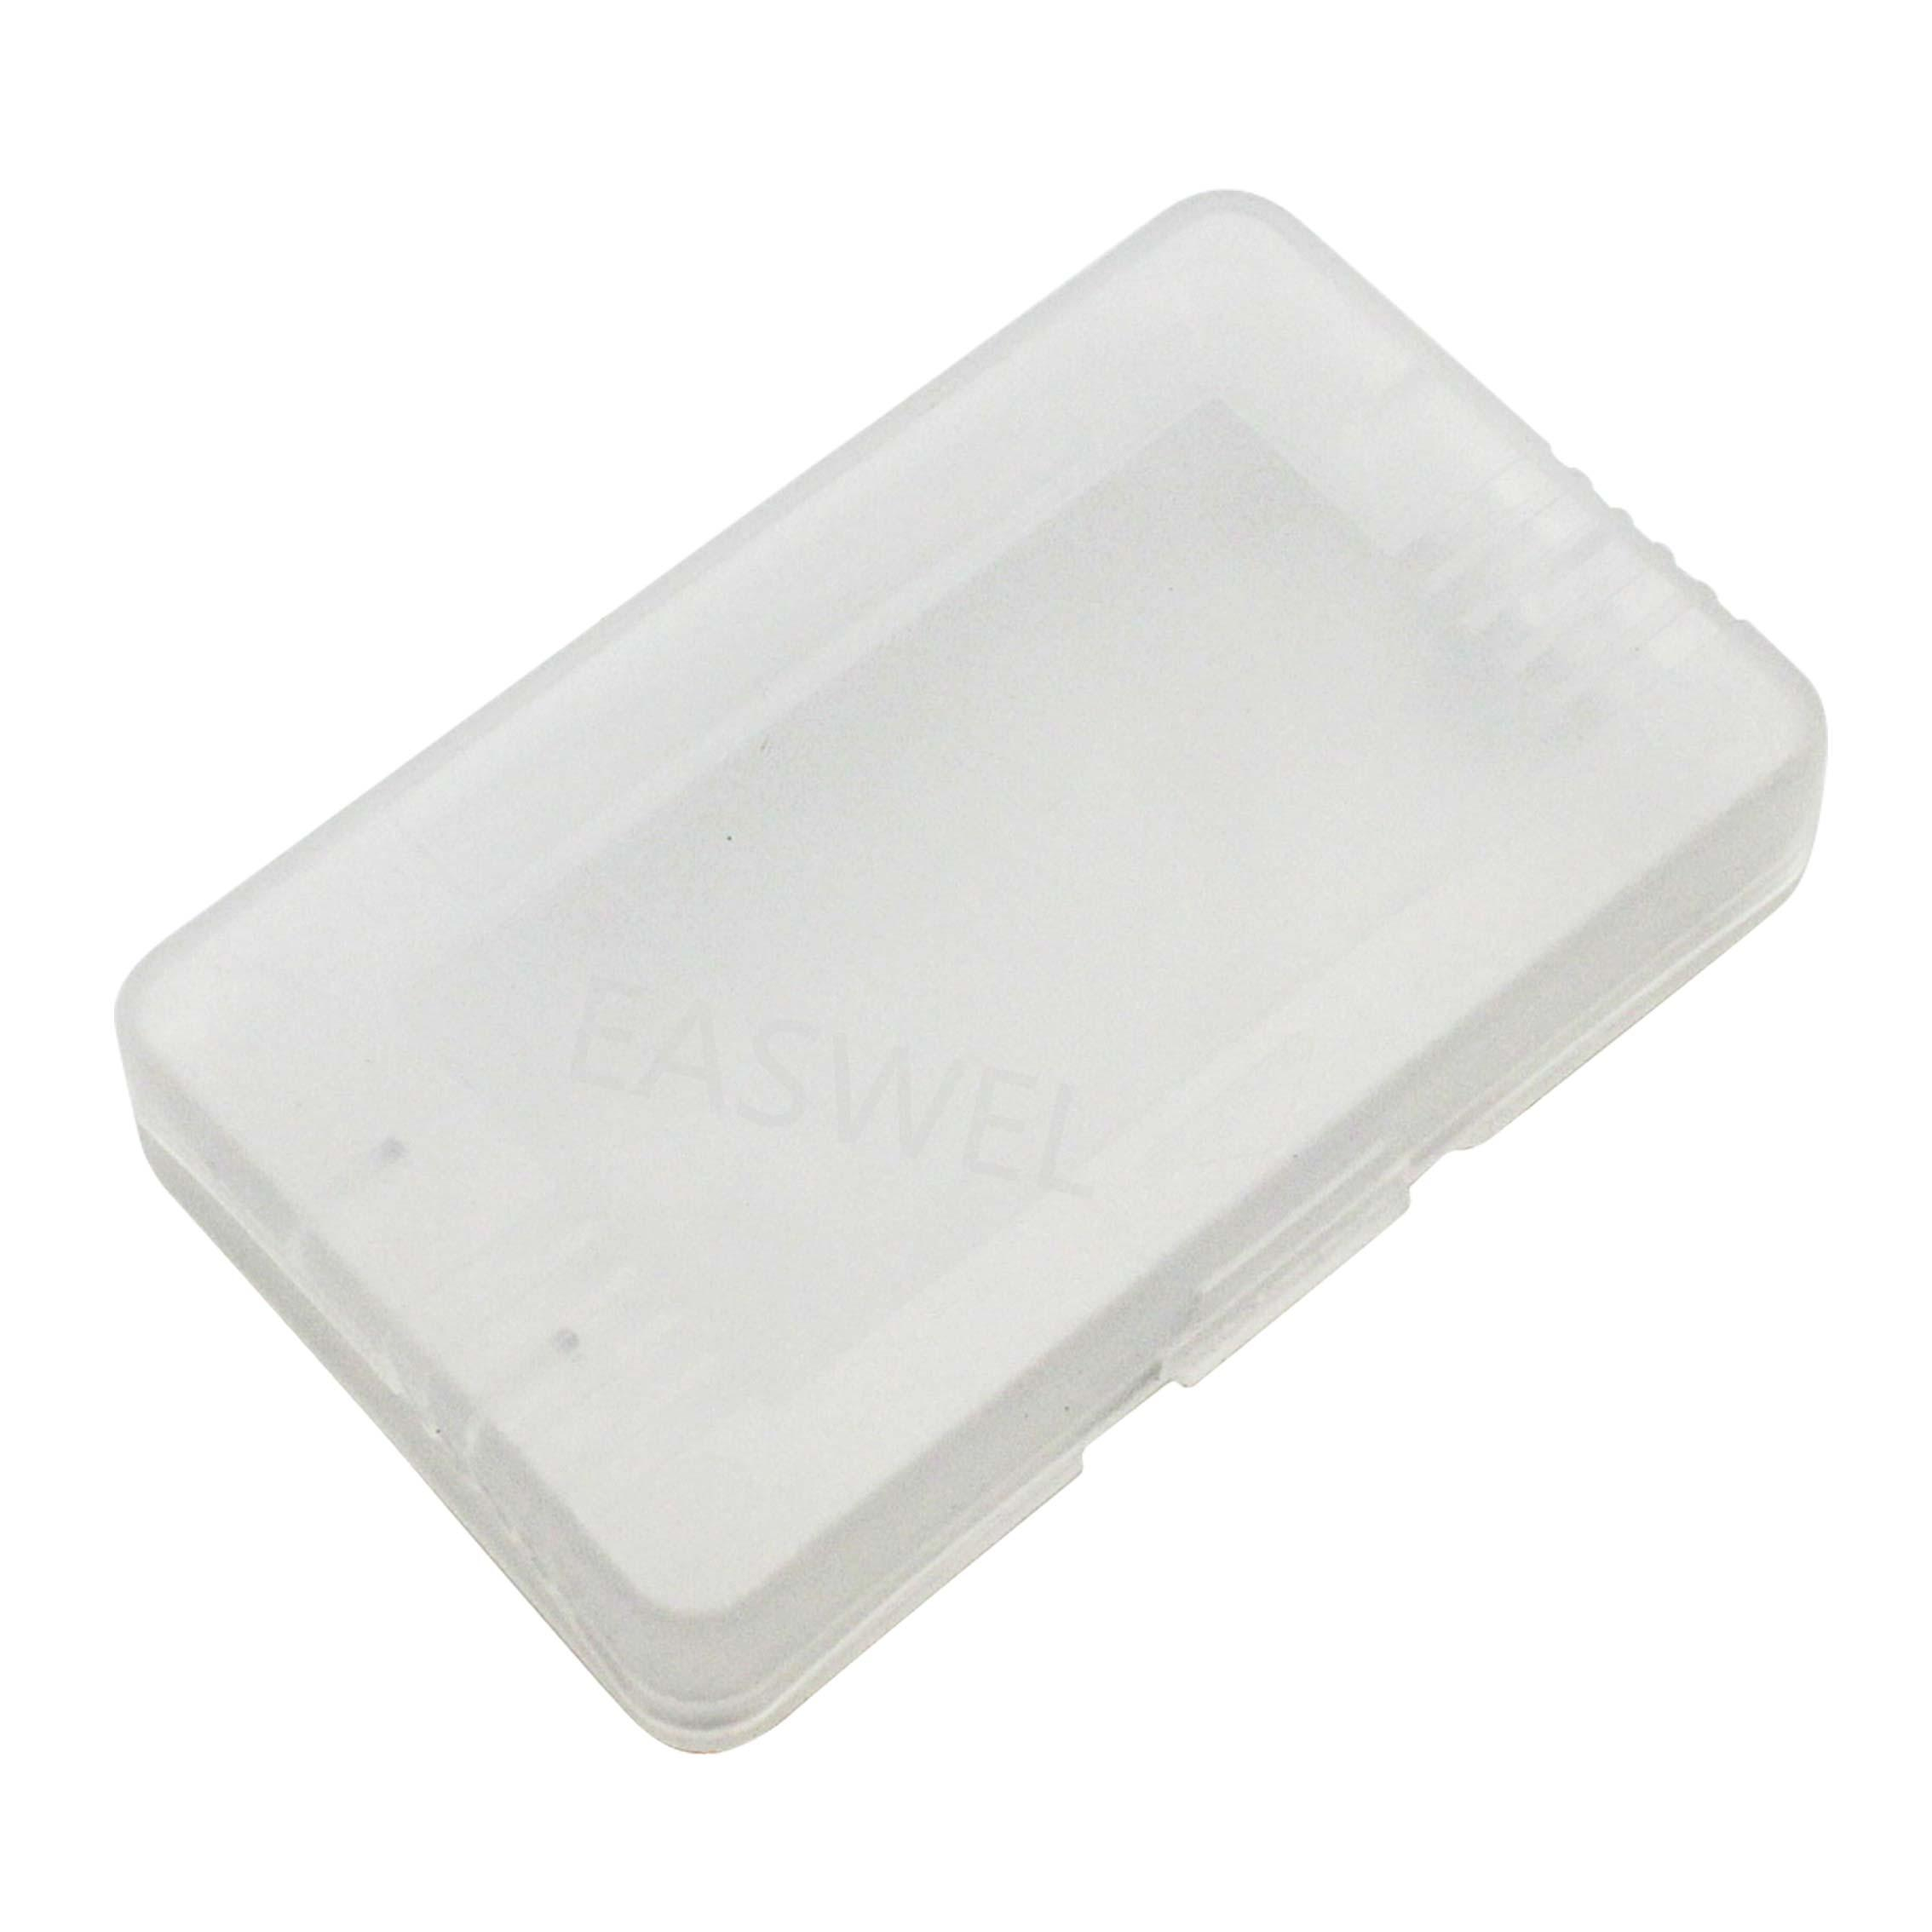 hard clear plastic cases for Nintendo game boy Advance GBA SP GBM GBA Games Card Cartridge (box)